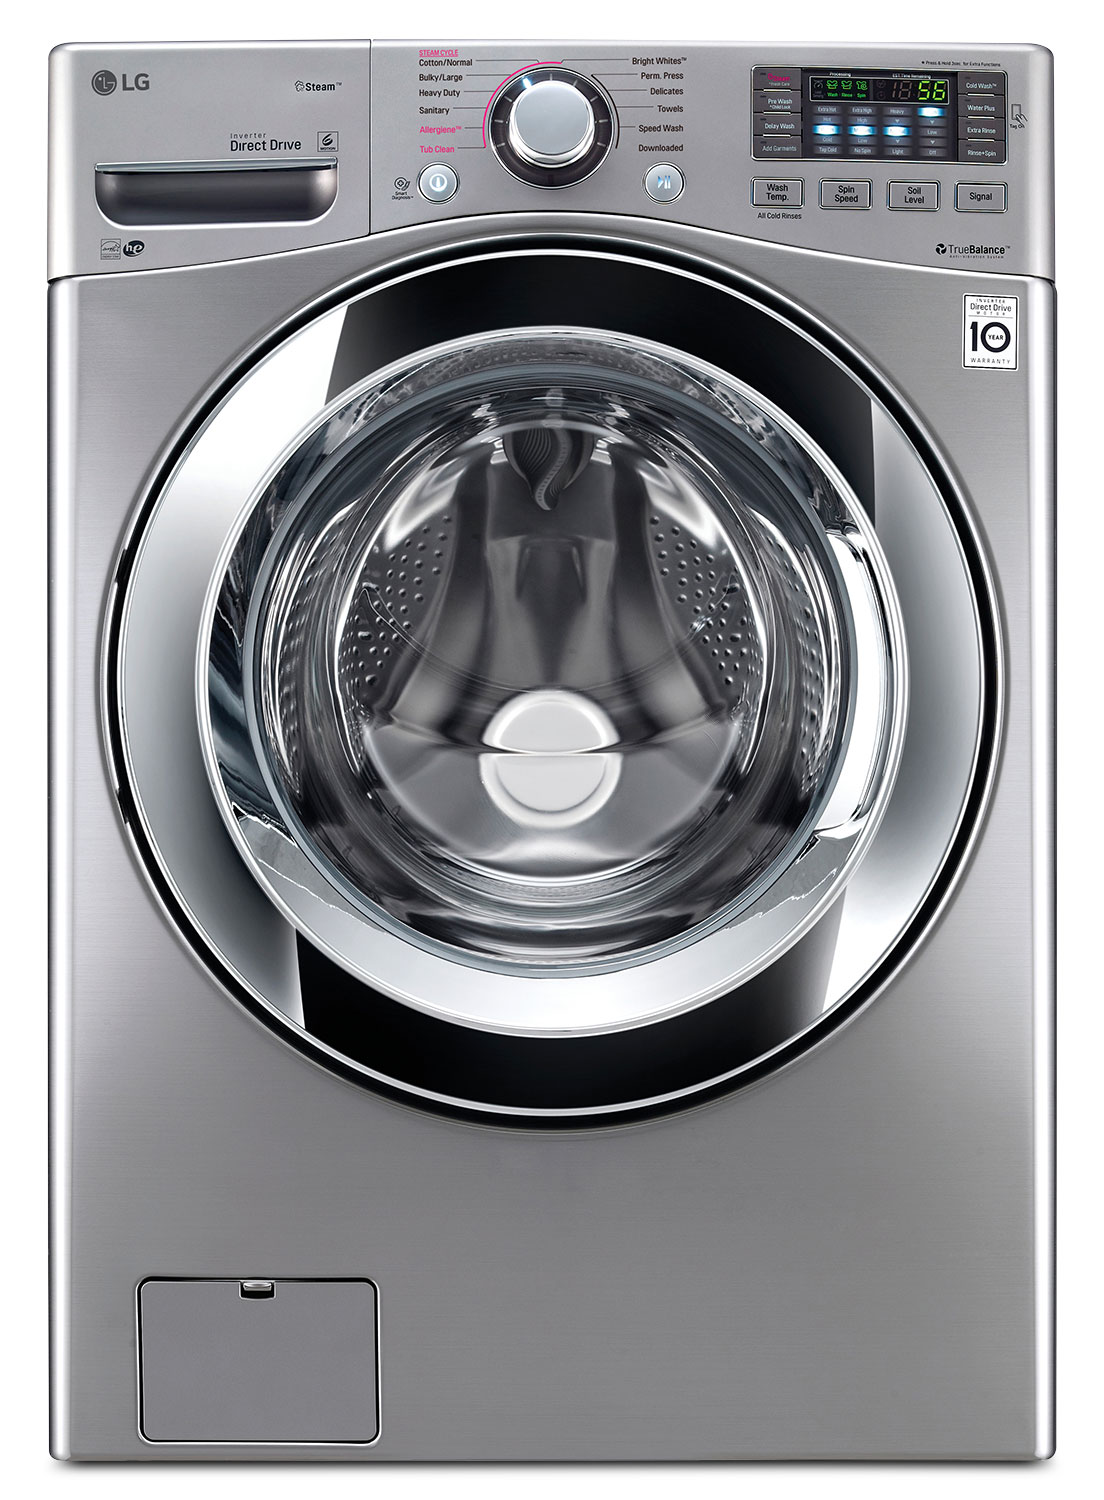 LG Graphite Steel Front-Load Washer (5.2 Cu. Ft. IEC) - WM3670HVA